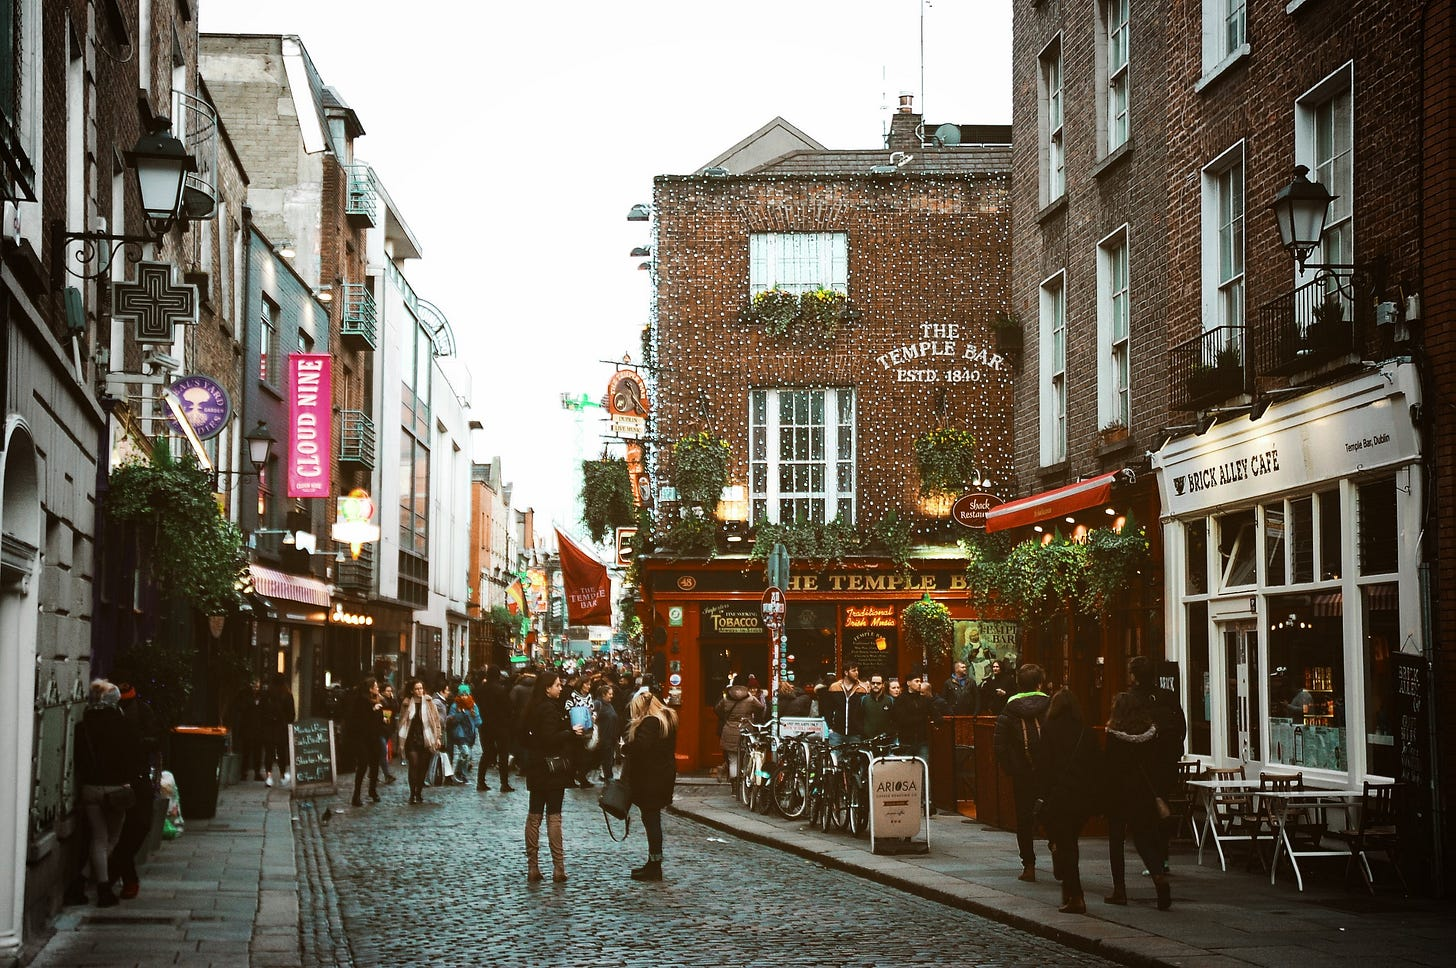 Image of Temple Bar in Dublin's city centre for article by Larry G. Maguire